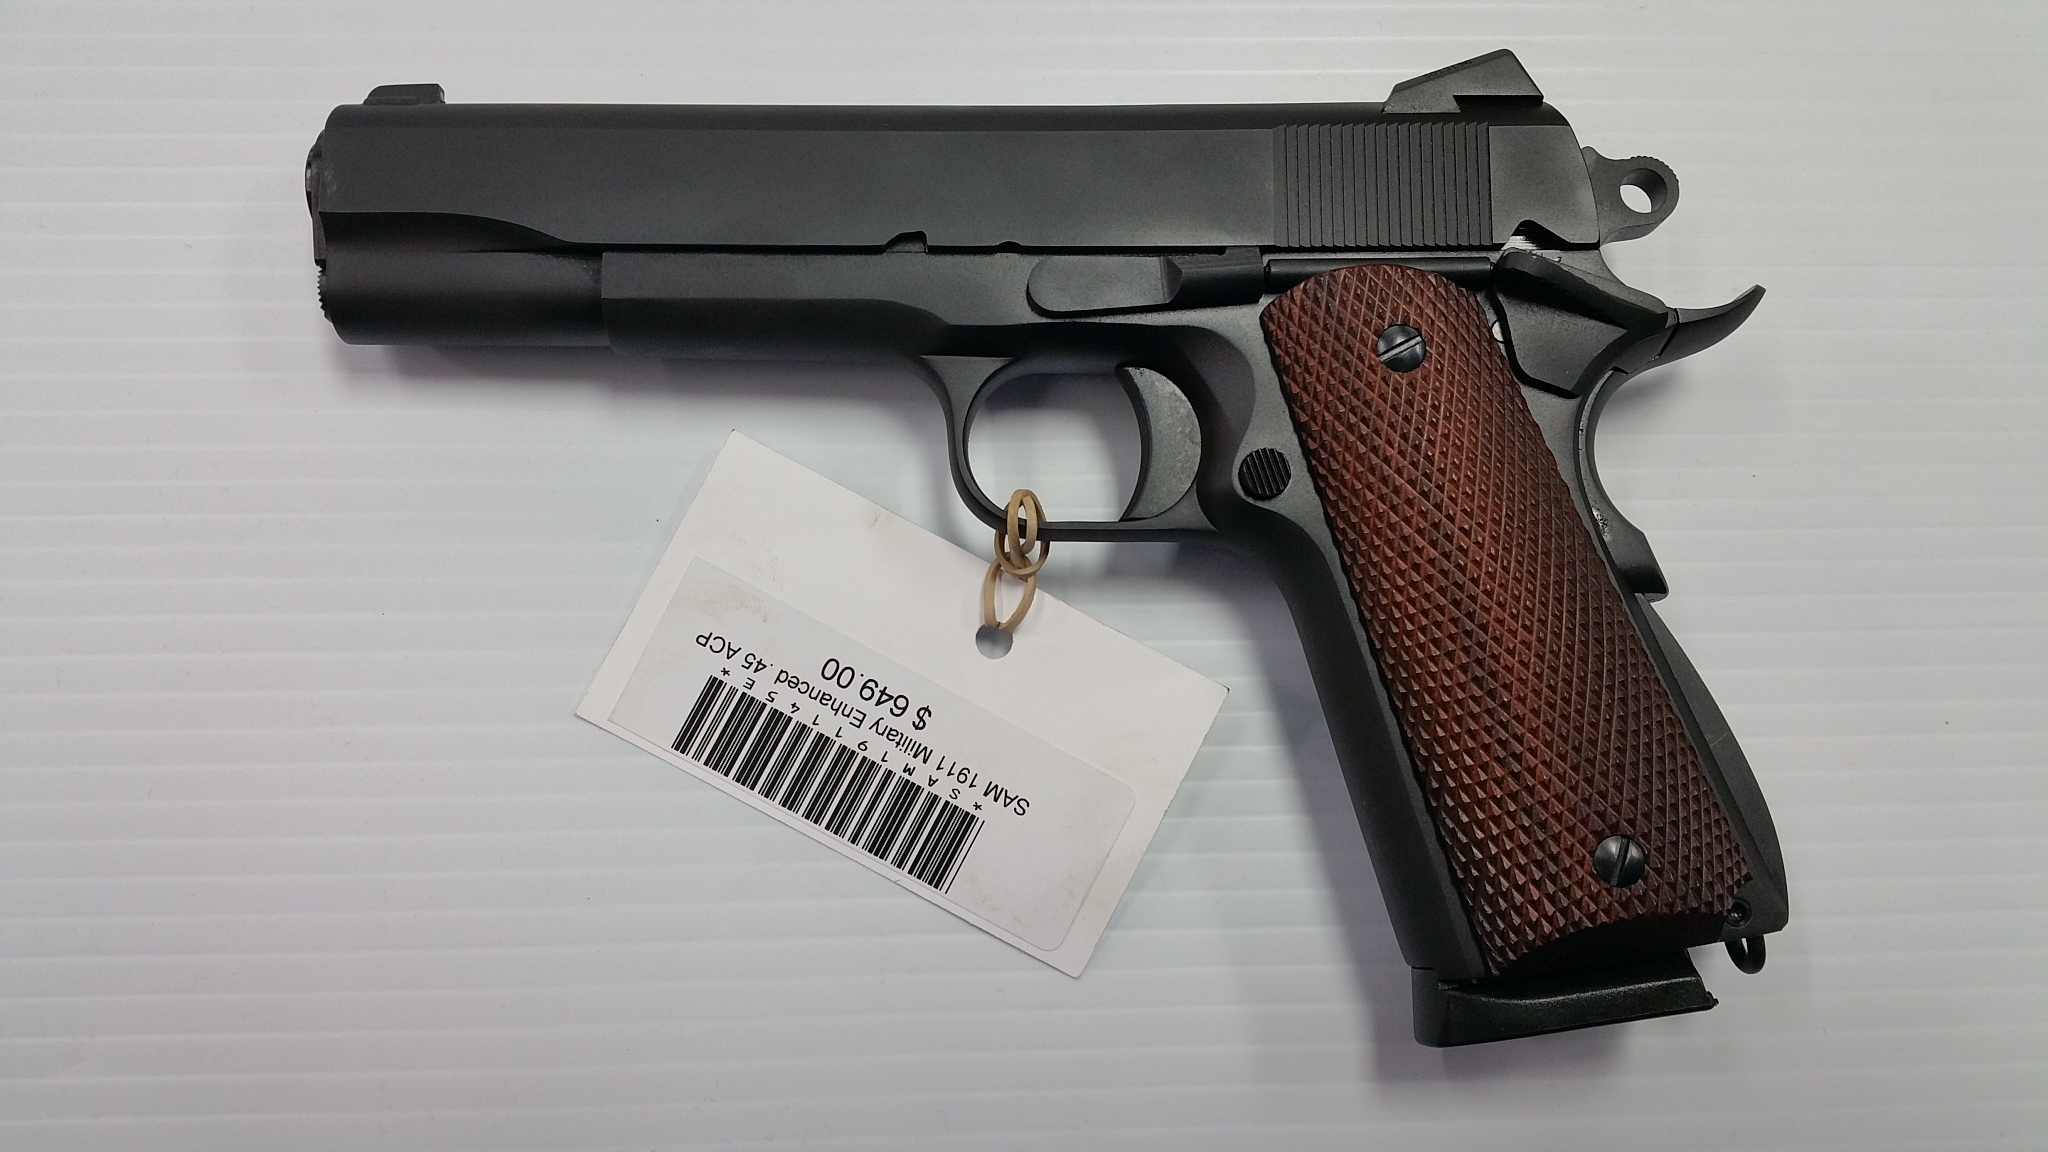 Shooter Arms Manufacturing Military Enhanced 1911 .45 acp